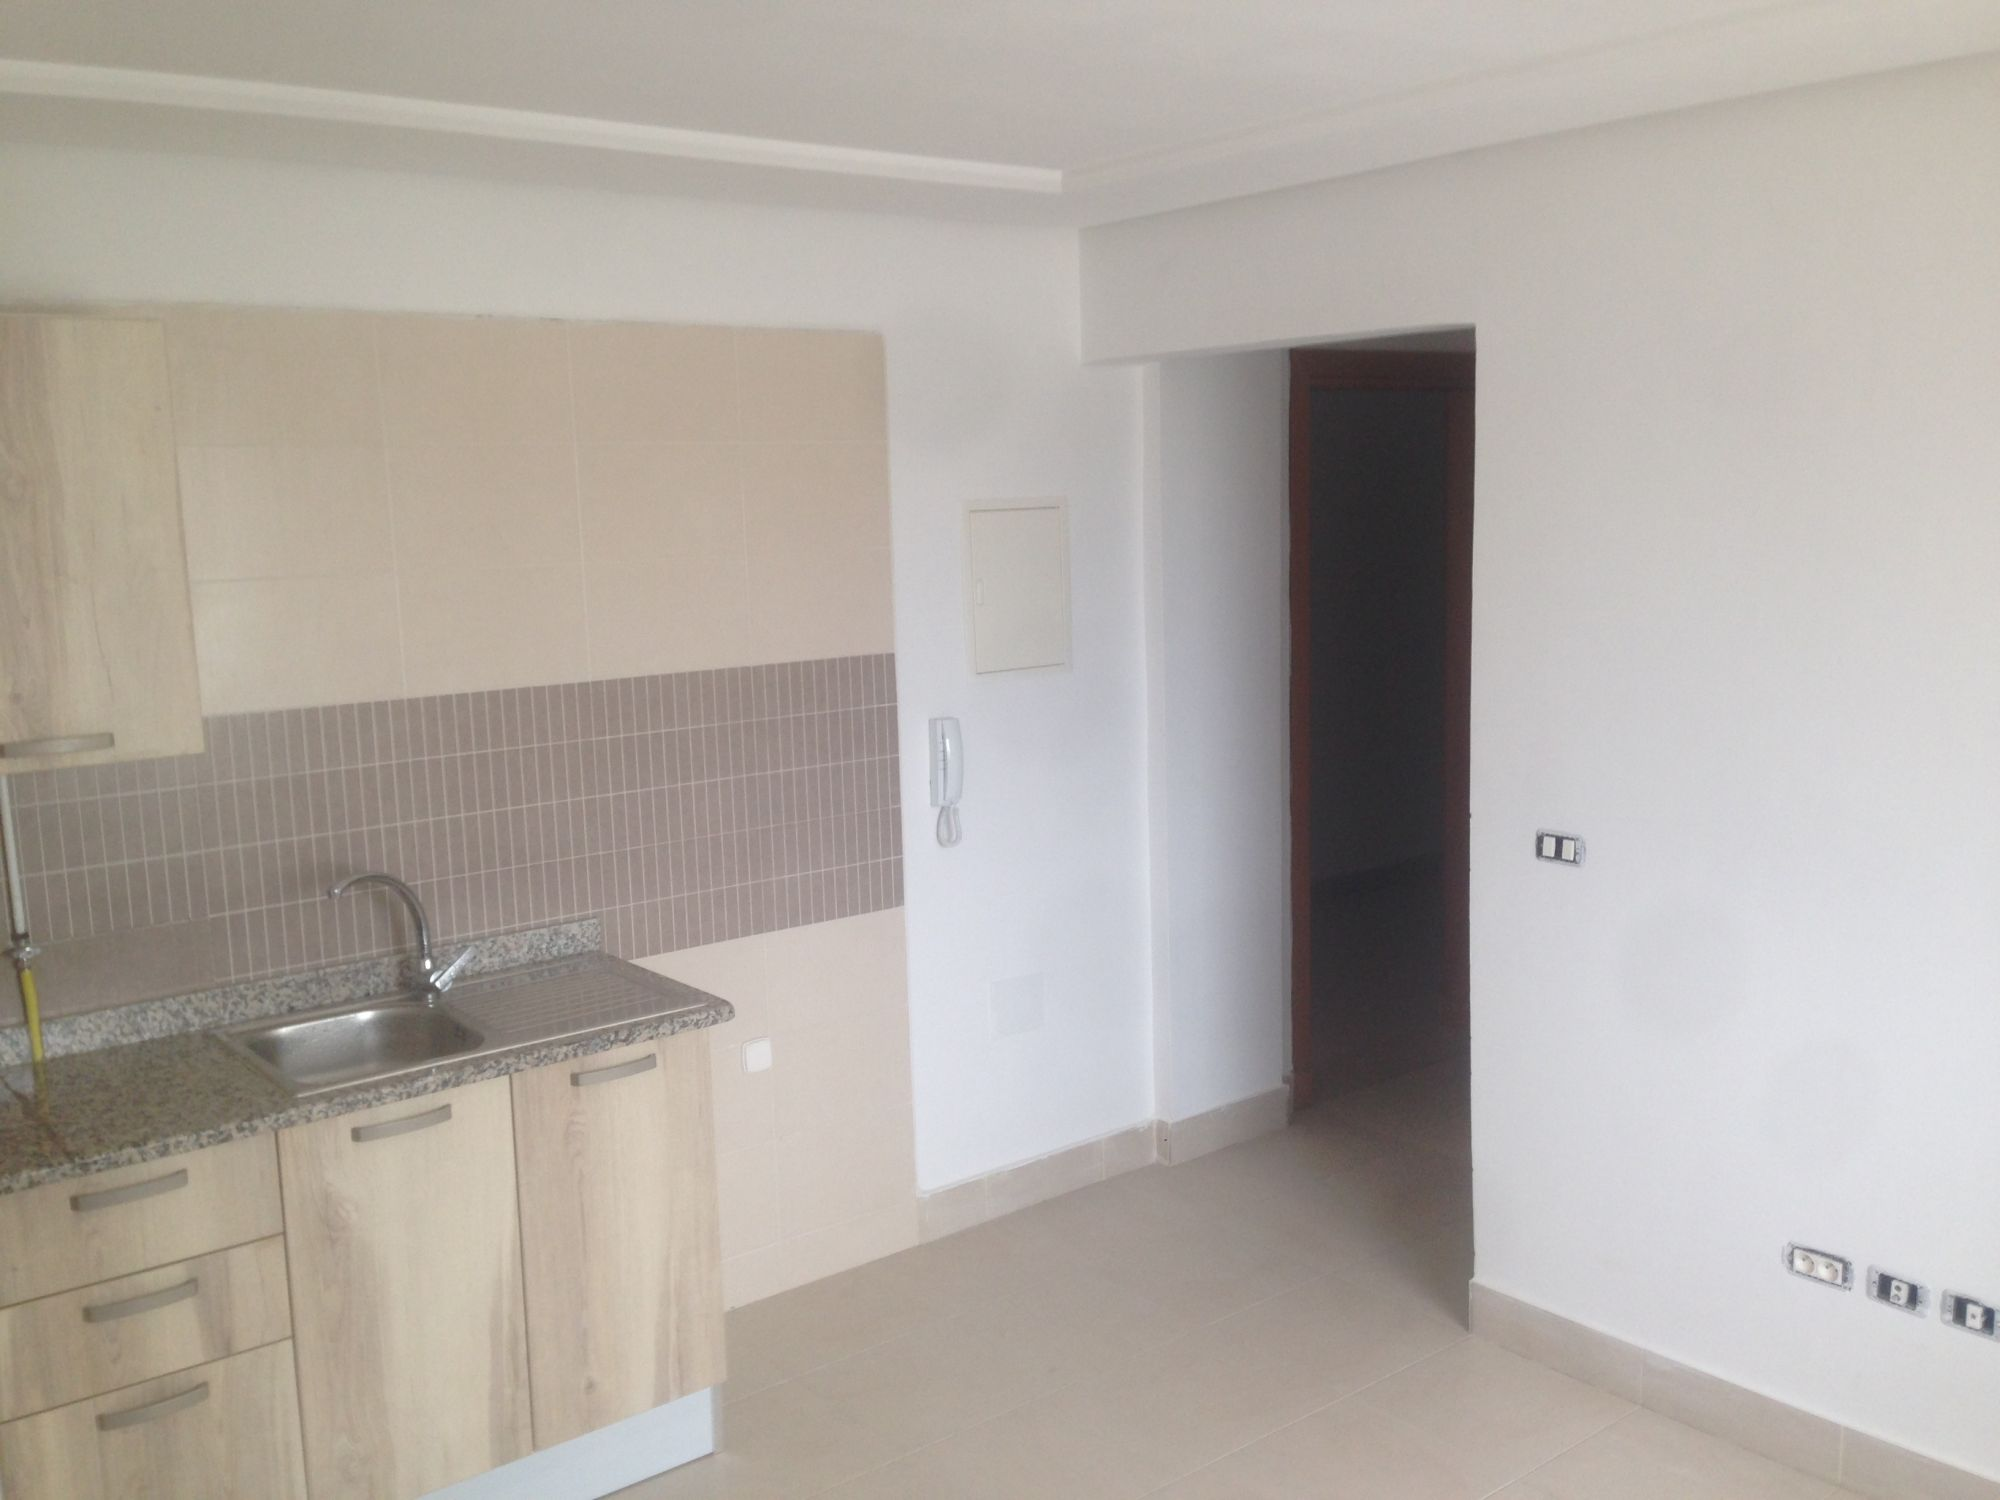 S 1 au rdc promoteur vente appartement a roport tunis for Vente appartement rdc